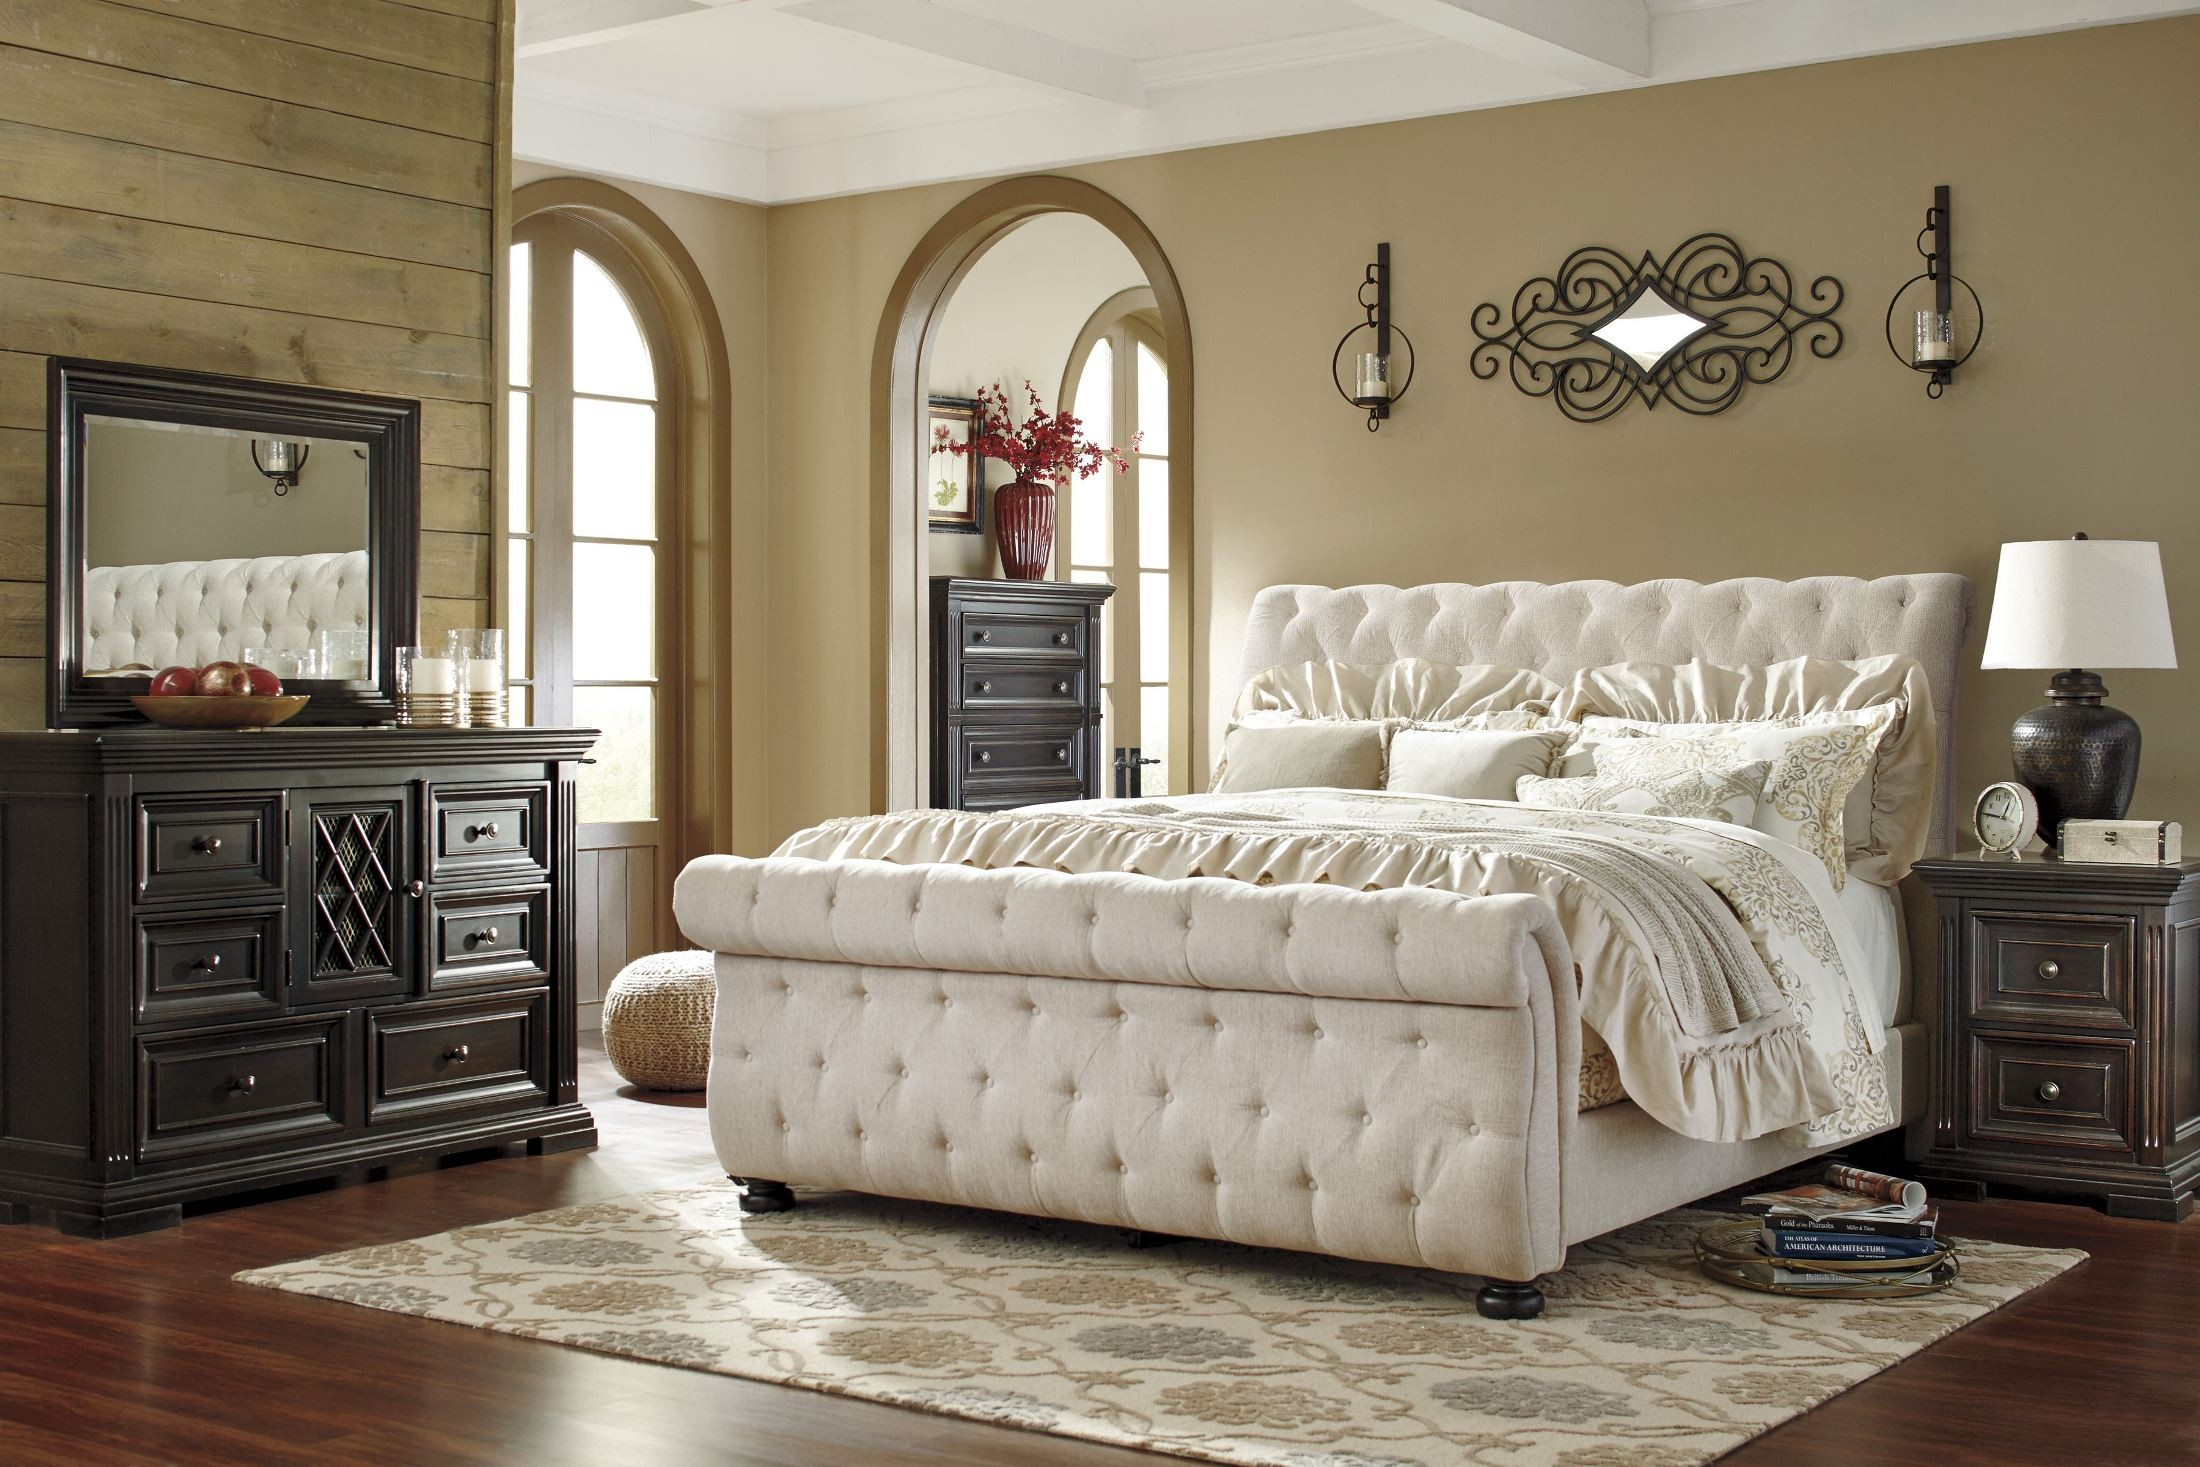 Willenburg Linen Queen Upholstered Sleigh Bed From Ashley Coleman Furniture